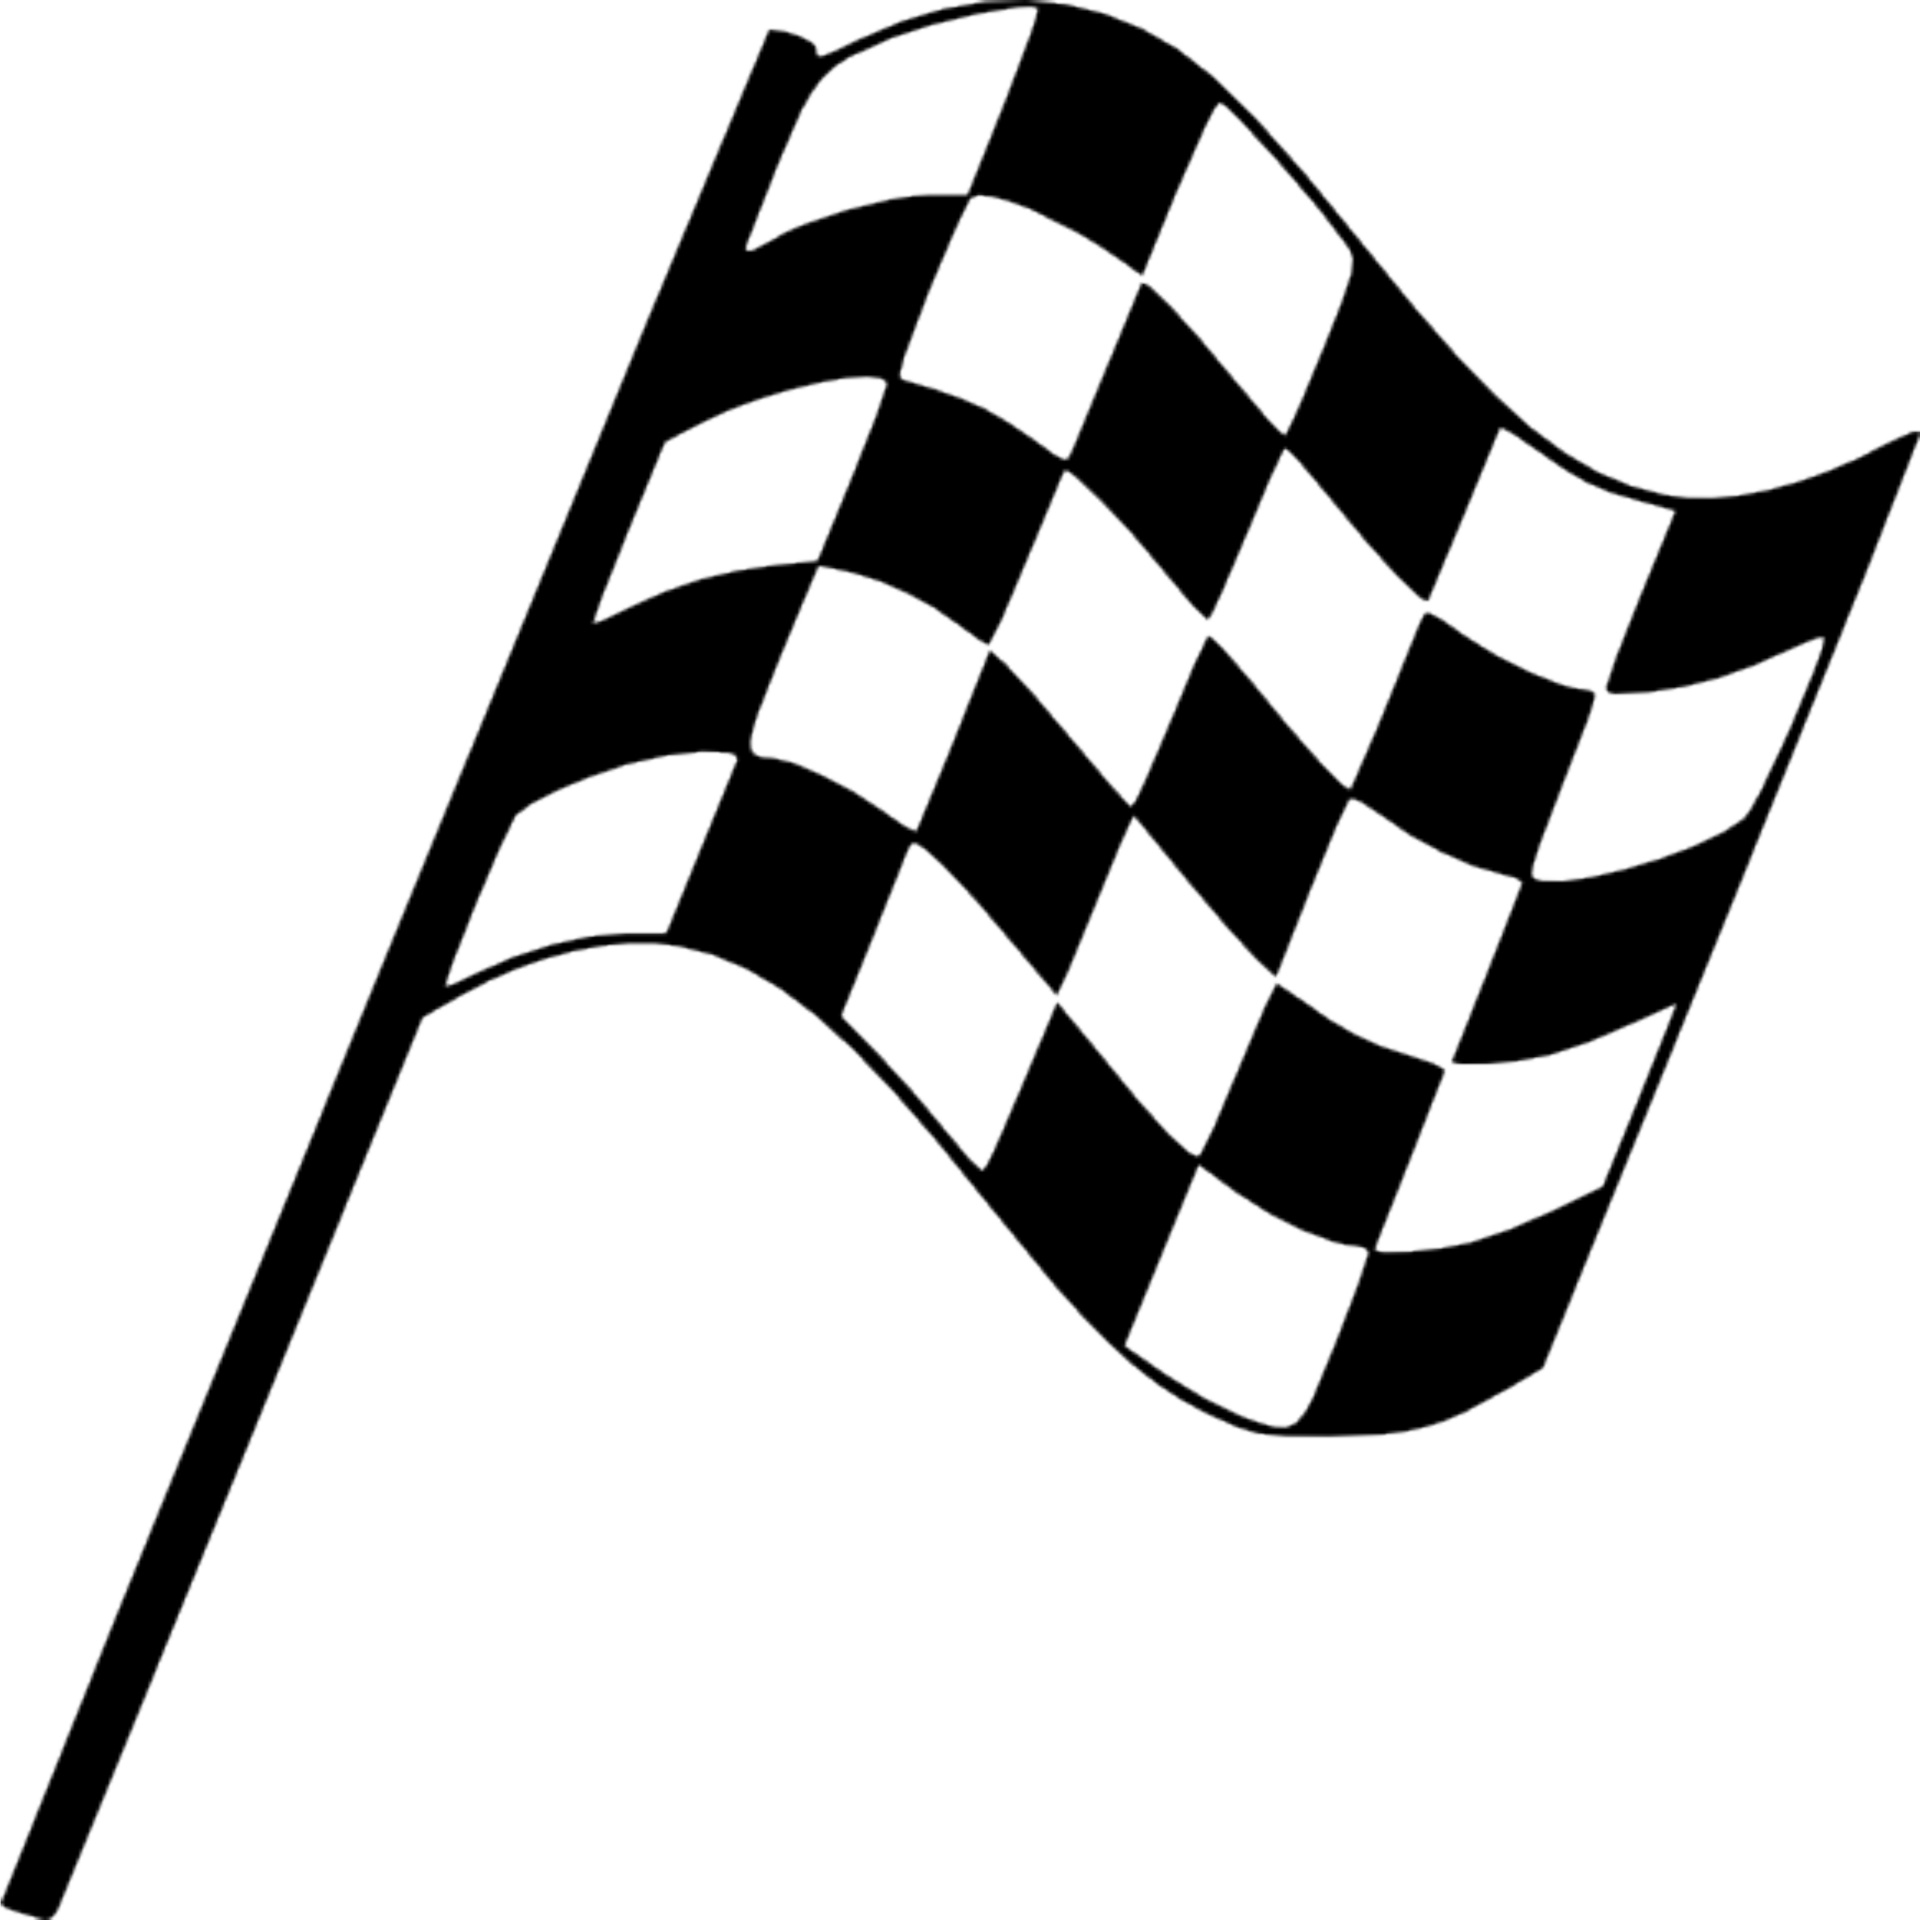 checked flag clipart best checkered flag clip art vector checkered flag clip art vector